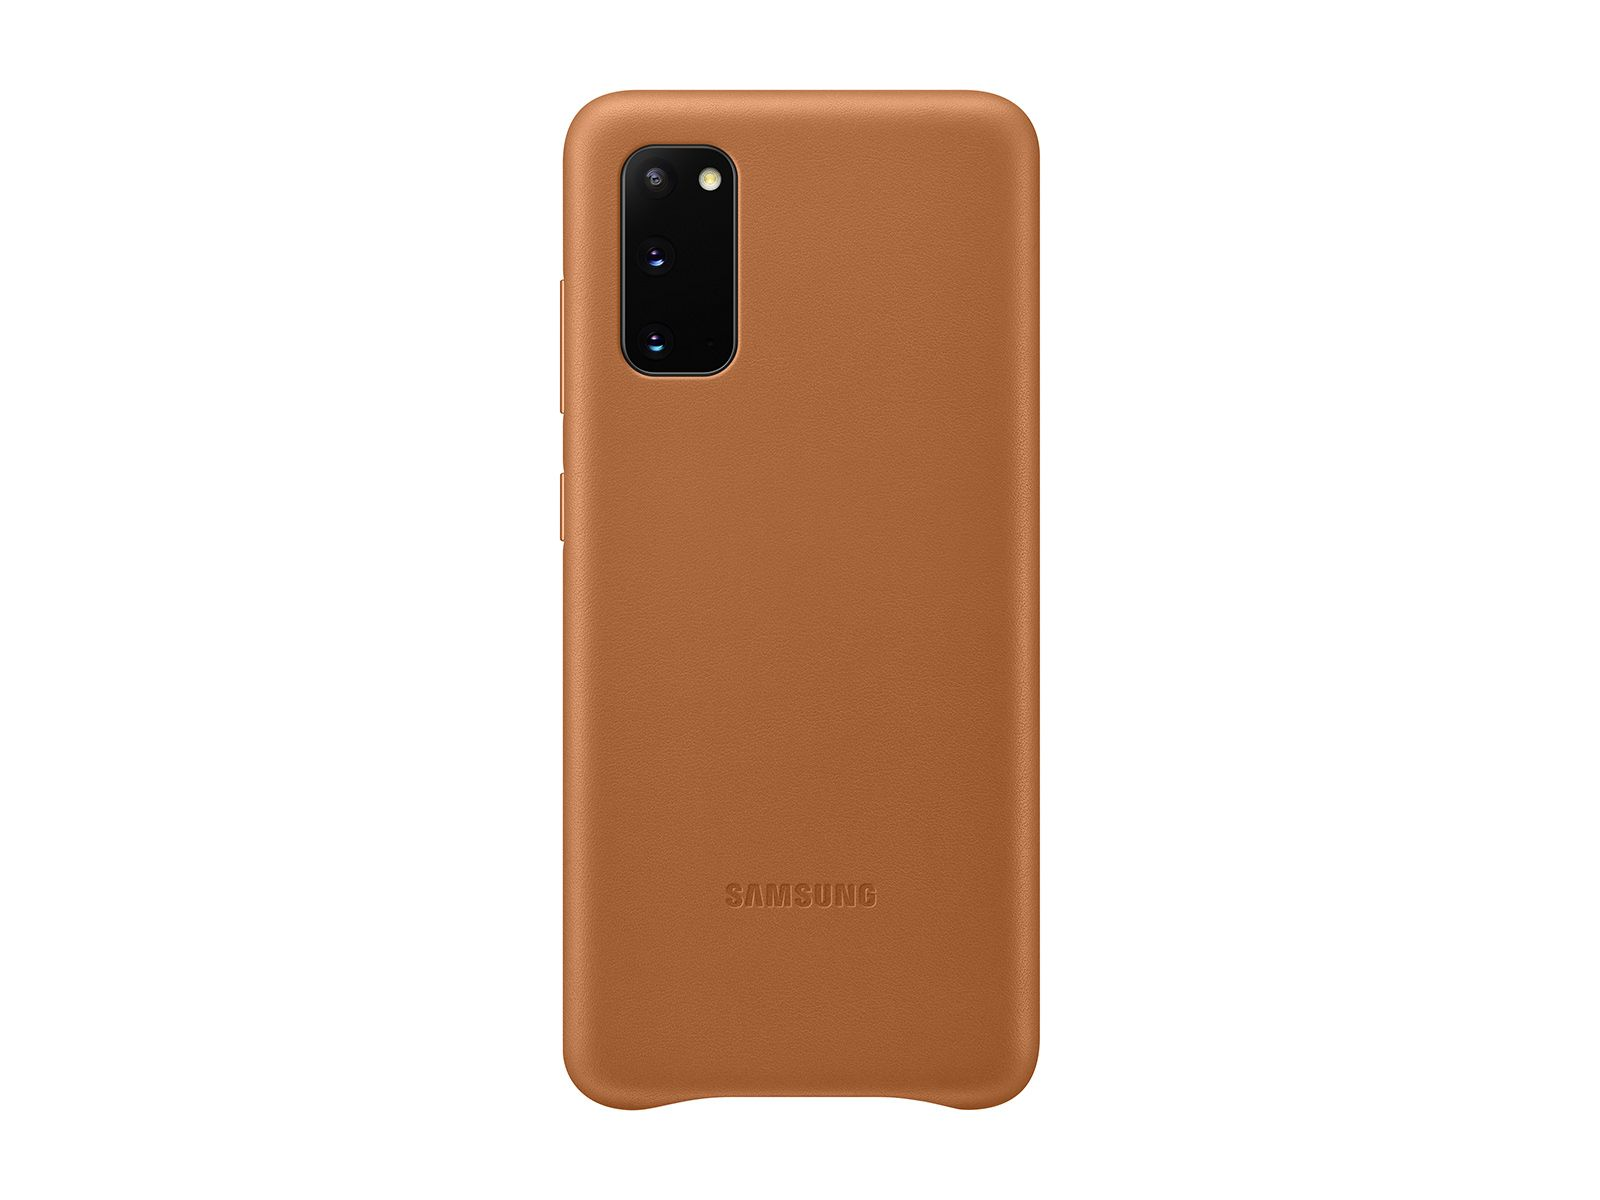 Galaxy S20 5G Leather cover Brown Mobile Accessories - EF-VG980LAEGUS | Samsung US